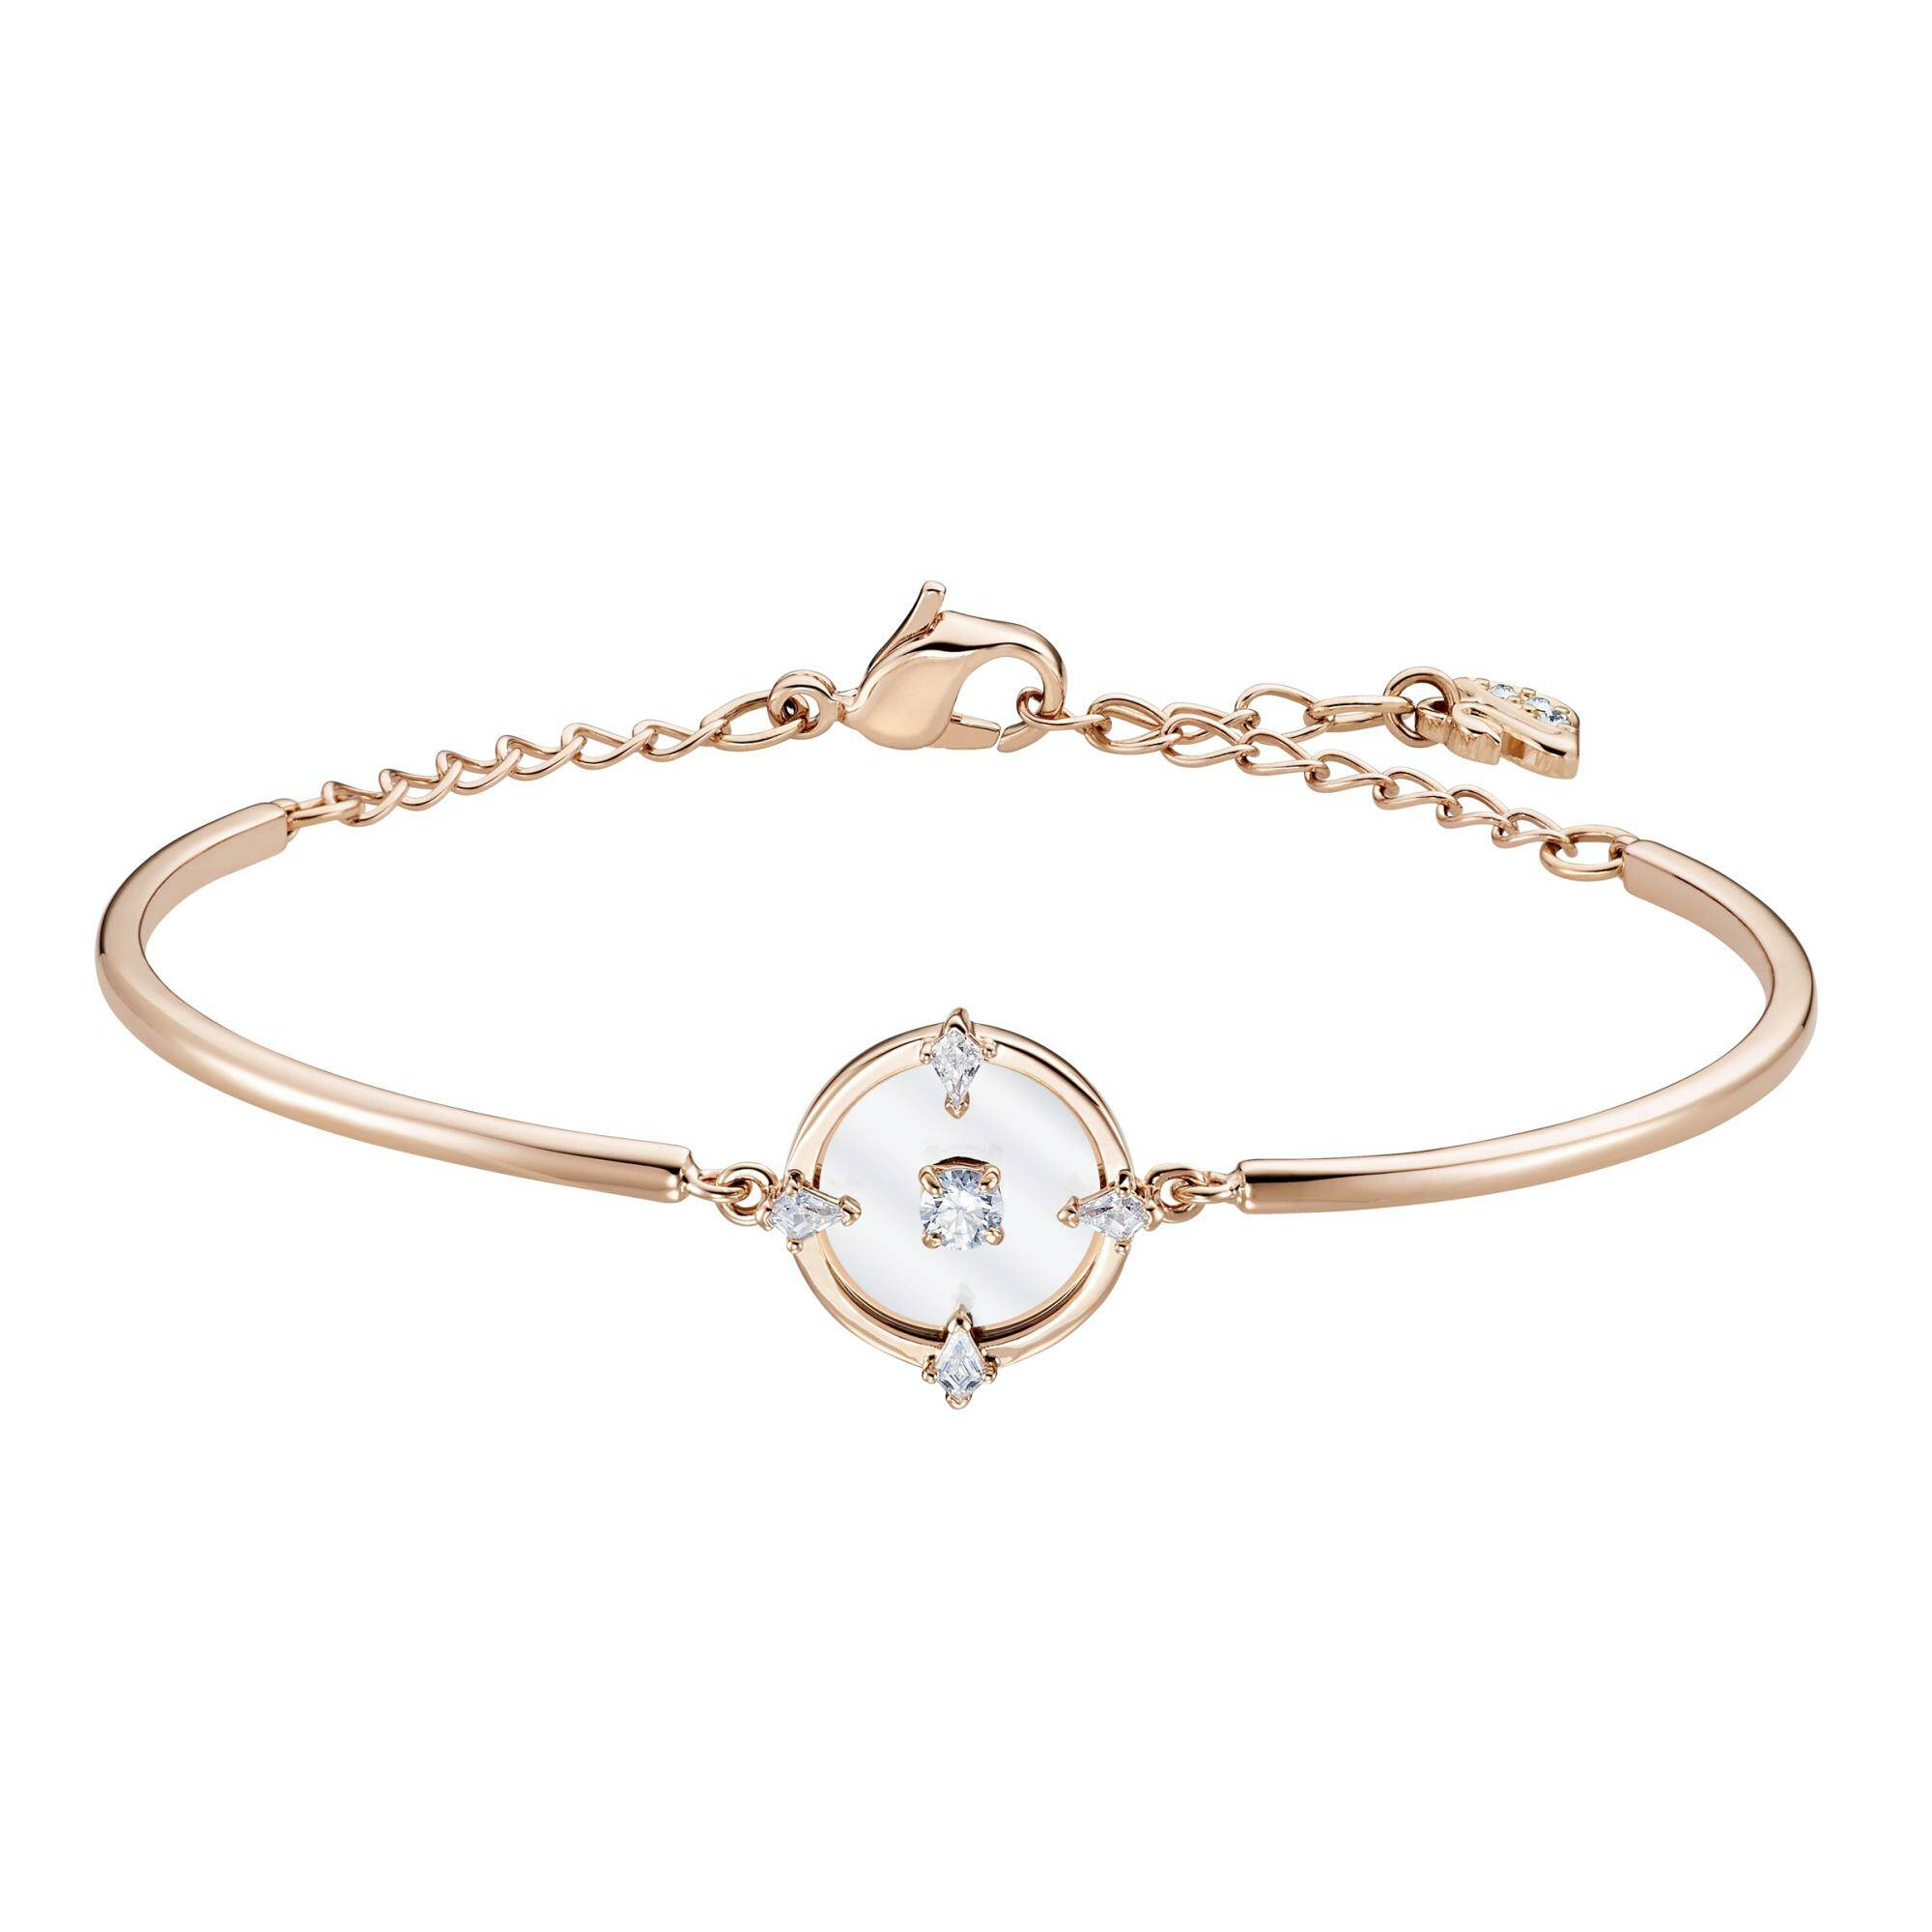 [SWAROVSKI] NORTH:BANGLE GLASS